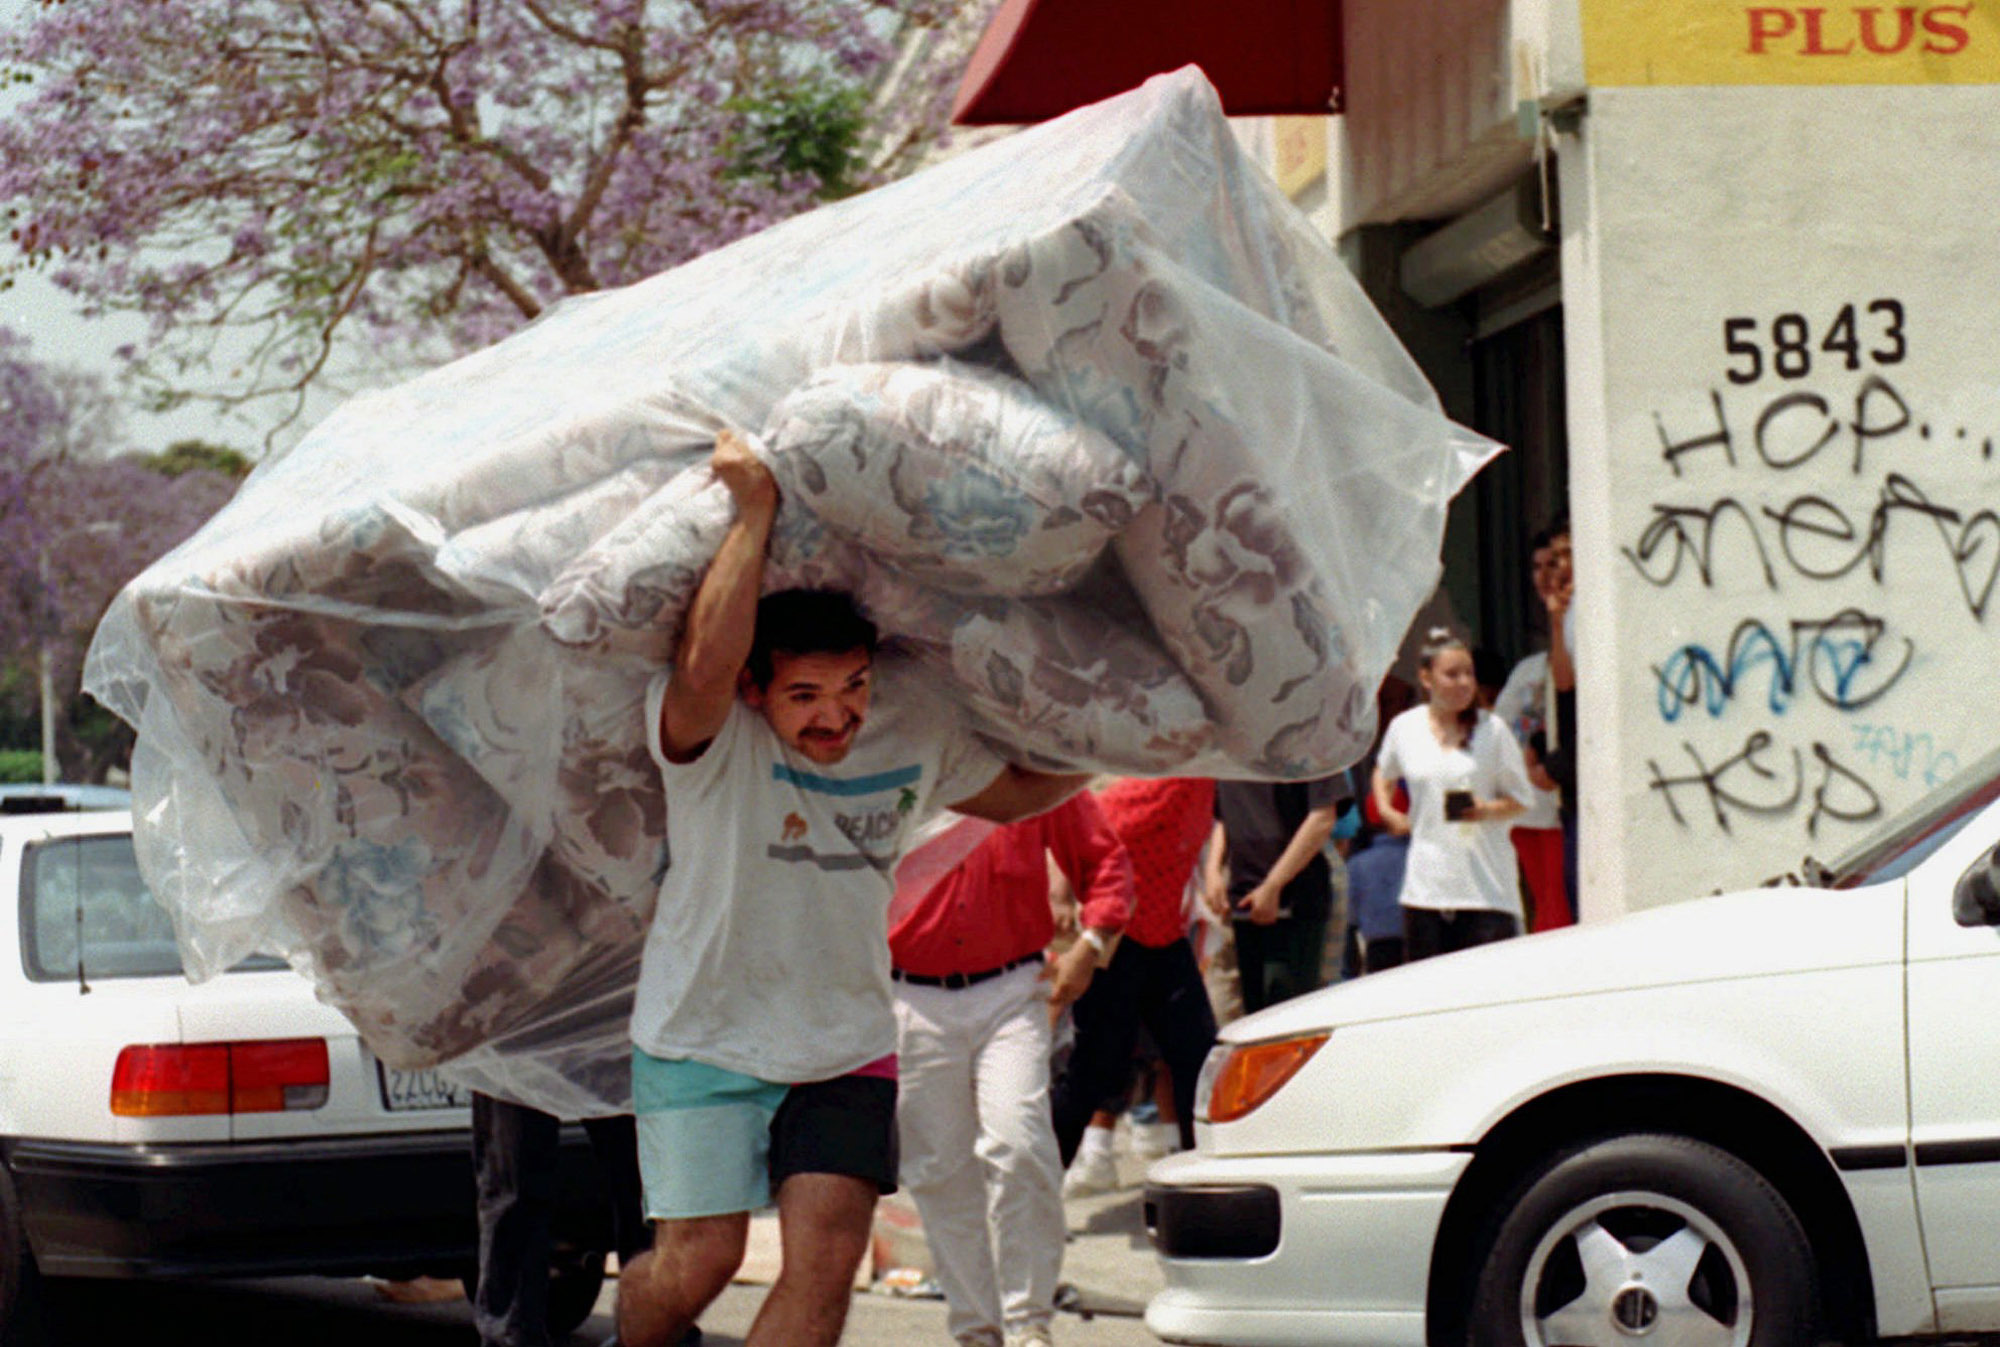 In this April 30, 1992 photo, a man carries a couch from a store in South Central Los Angeles as looting and rioting continued throughout the area. (AP Photo/Nick Ut)